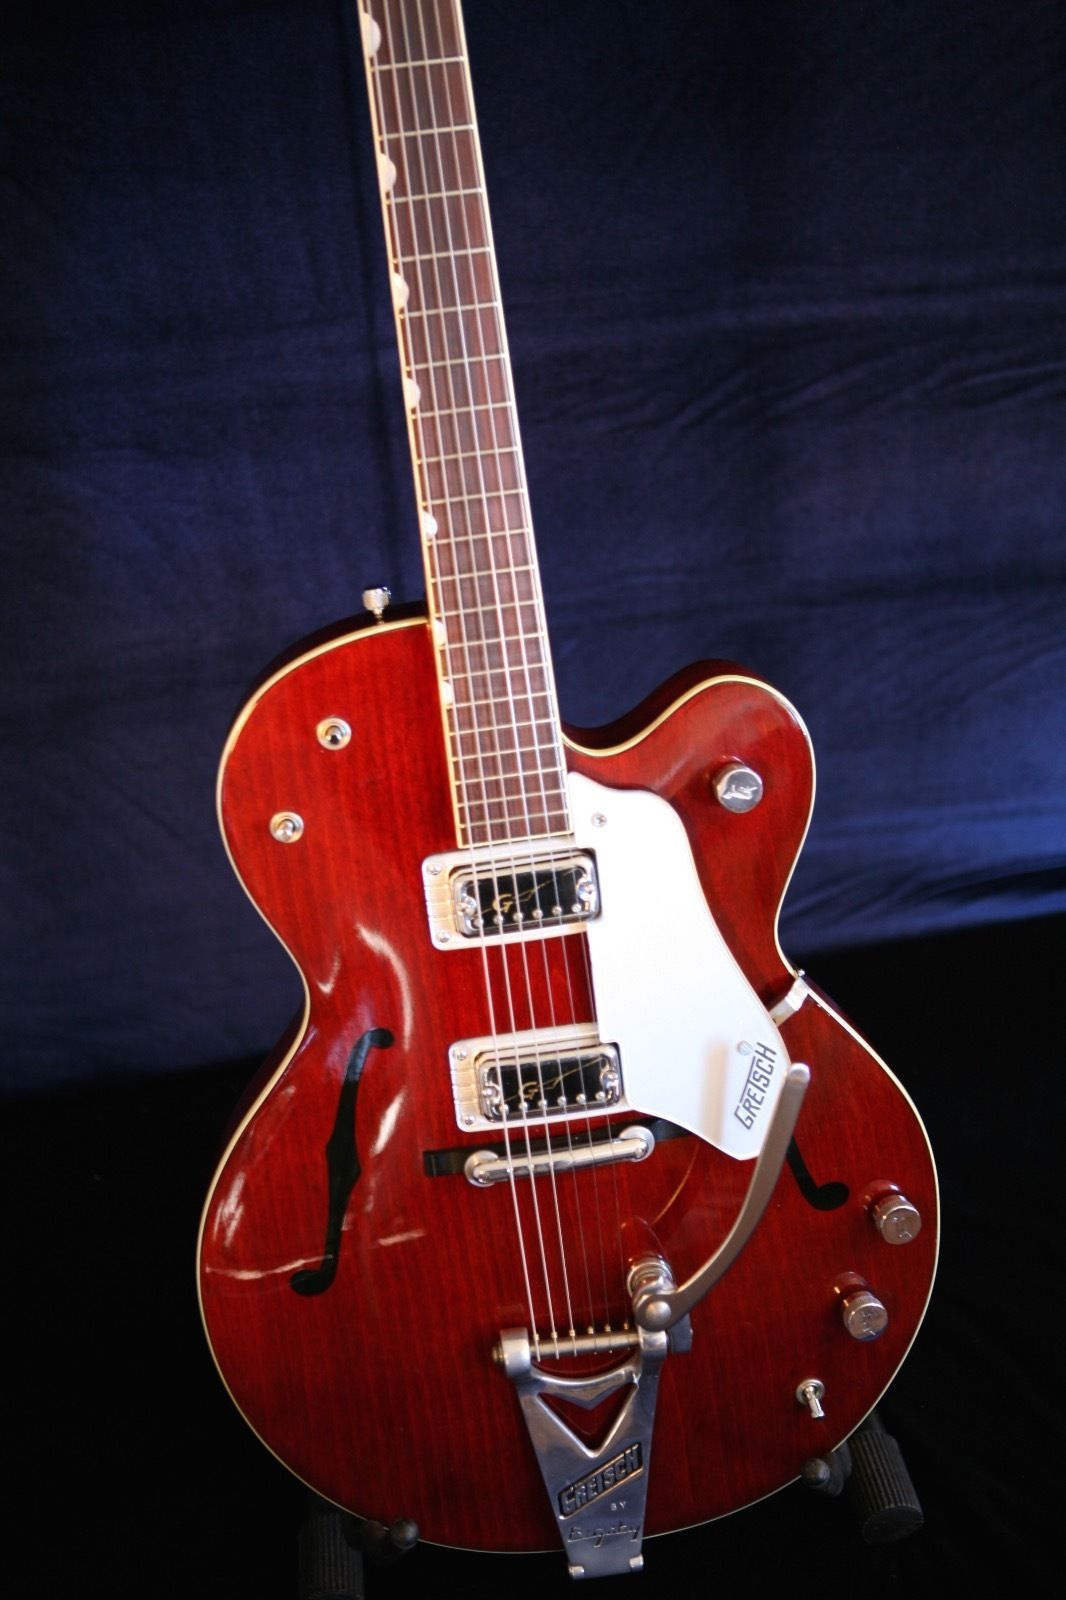 1962 Gretsch Chet Atkins 6119 Tennessean in Musical Instruments & Gear, Vintage Musical Instruments, Vintage Guitars, Electric   eBay